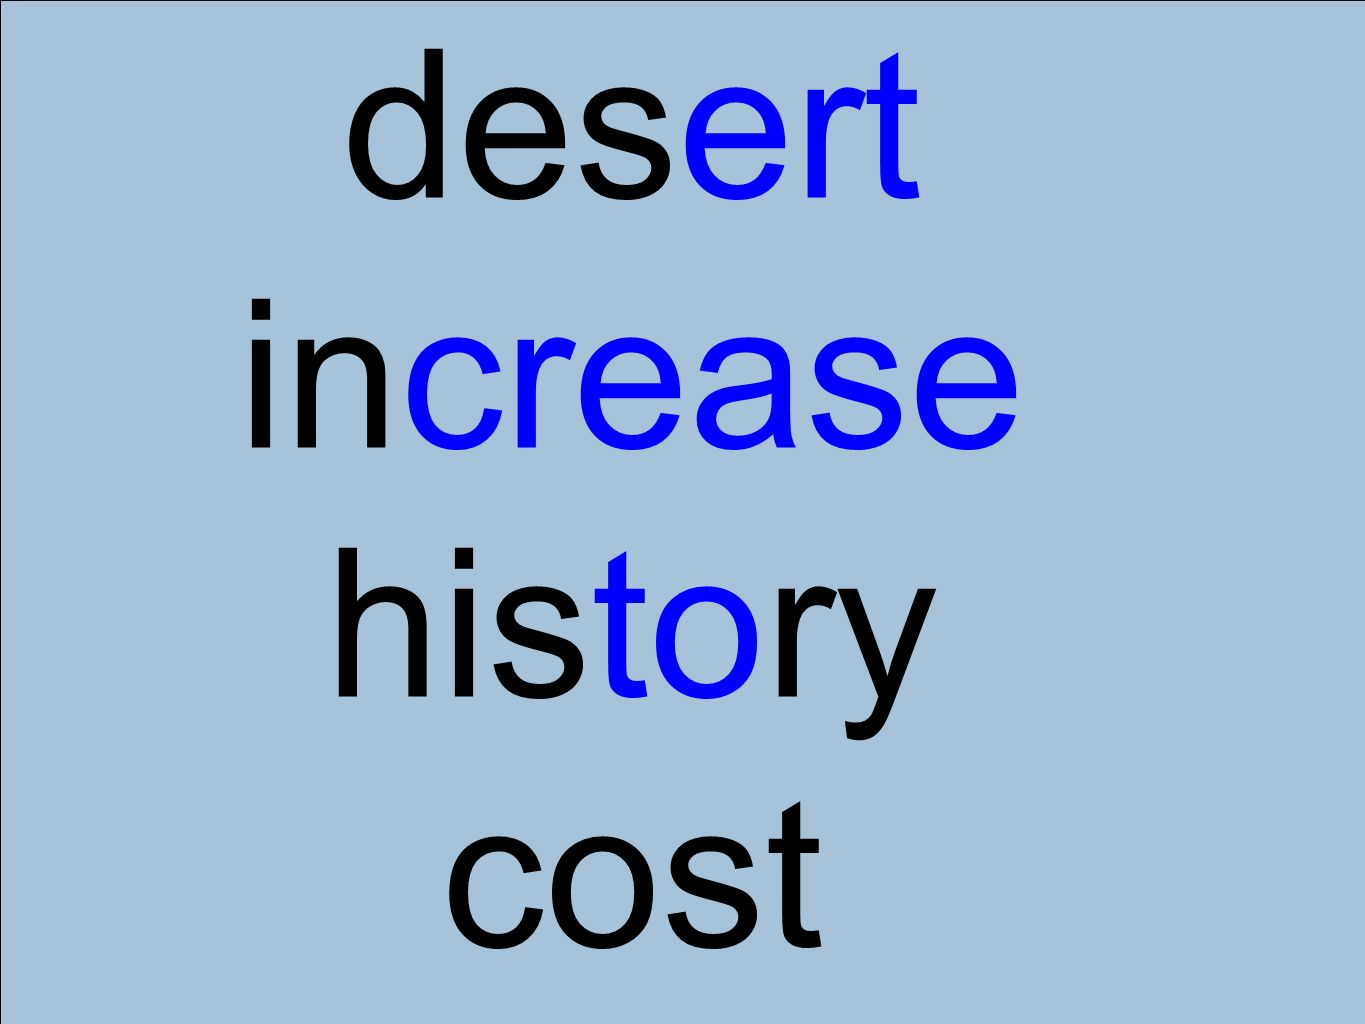 desert increase history cost